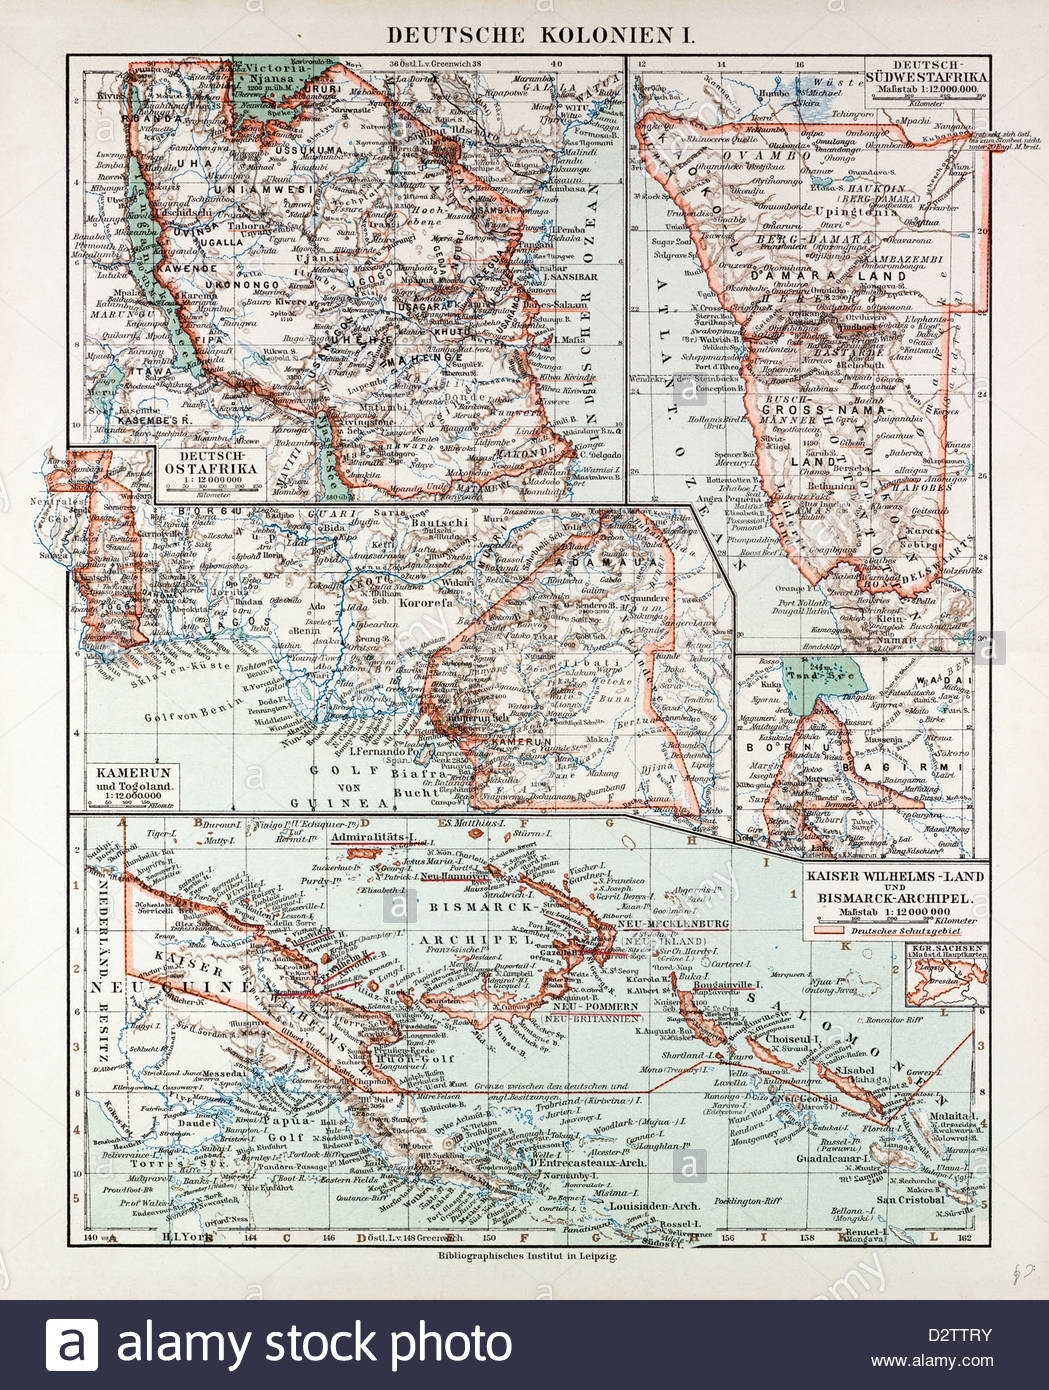 Map Of German Colonies German New Guinea Cameroon 1899 Stock Photo pertaining to German New Guinea Map